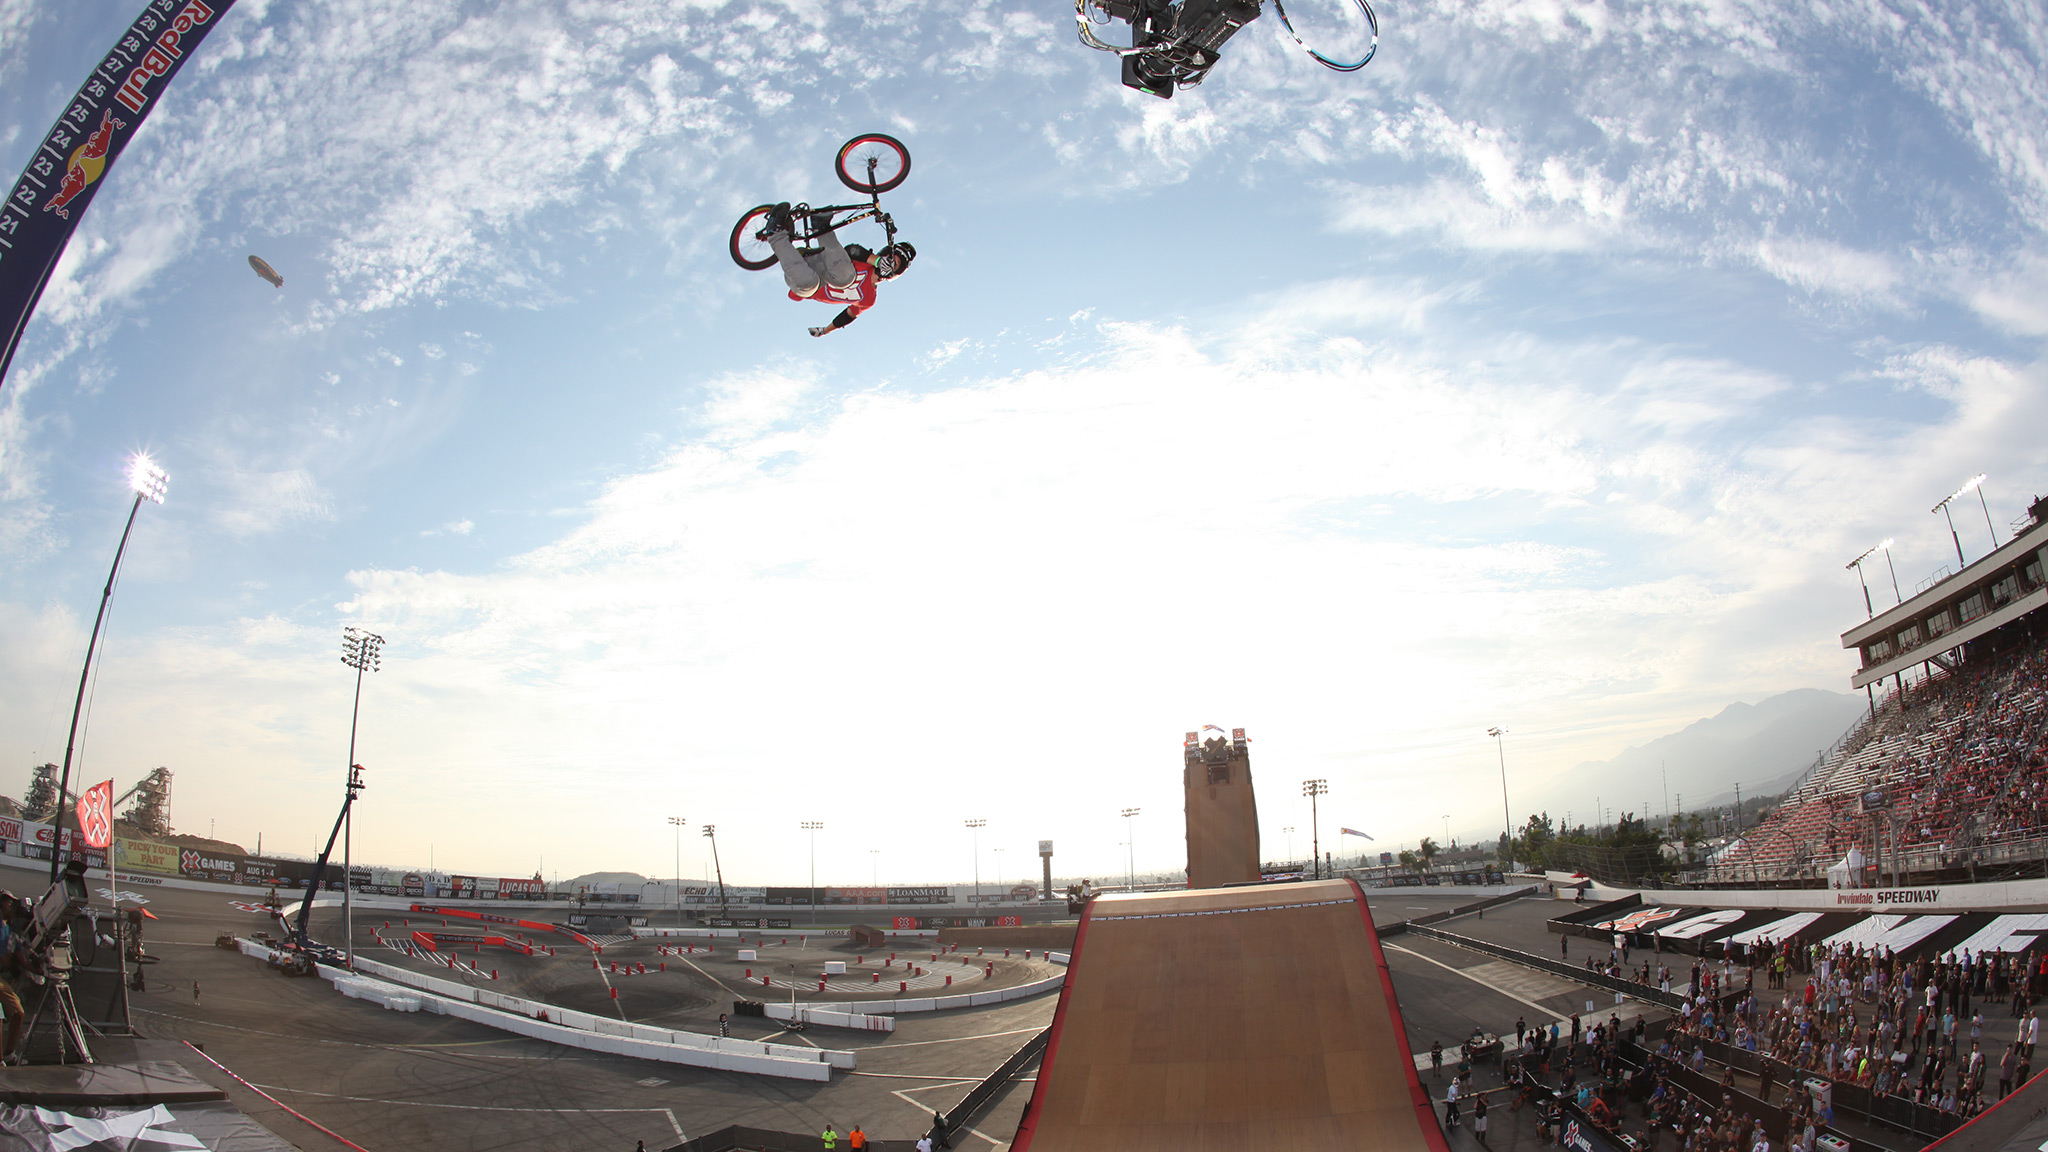 Morgan Wade -- BMX Big Air